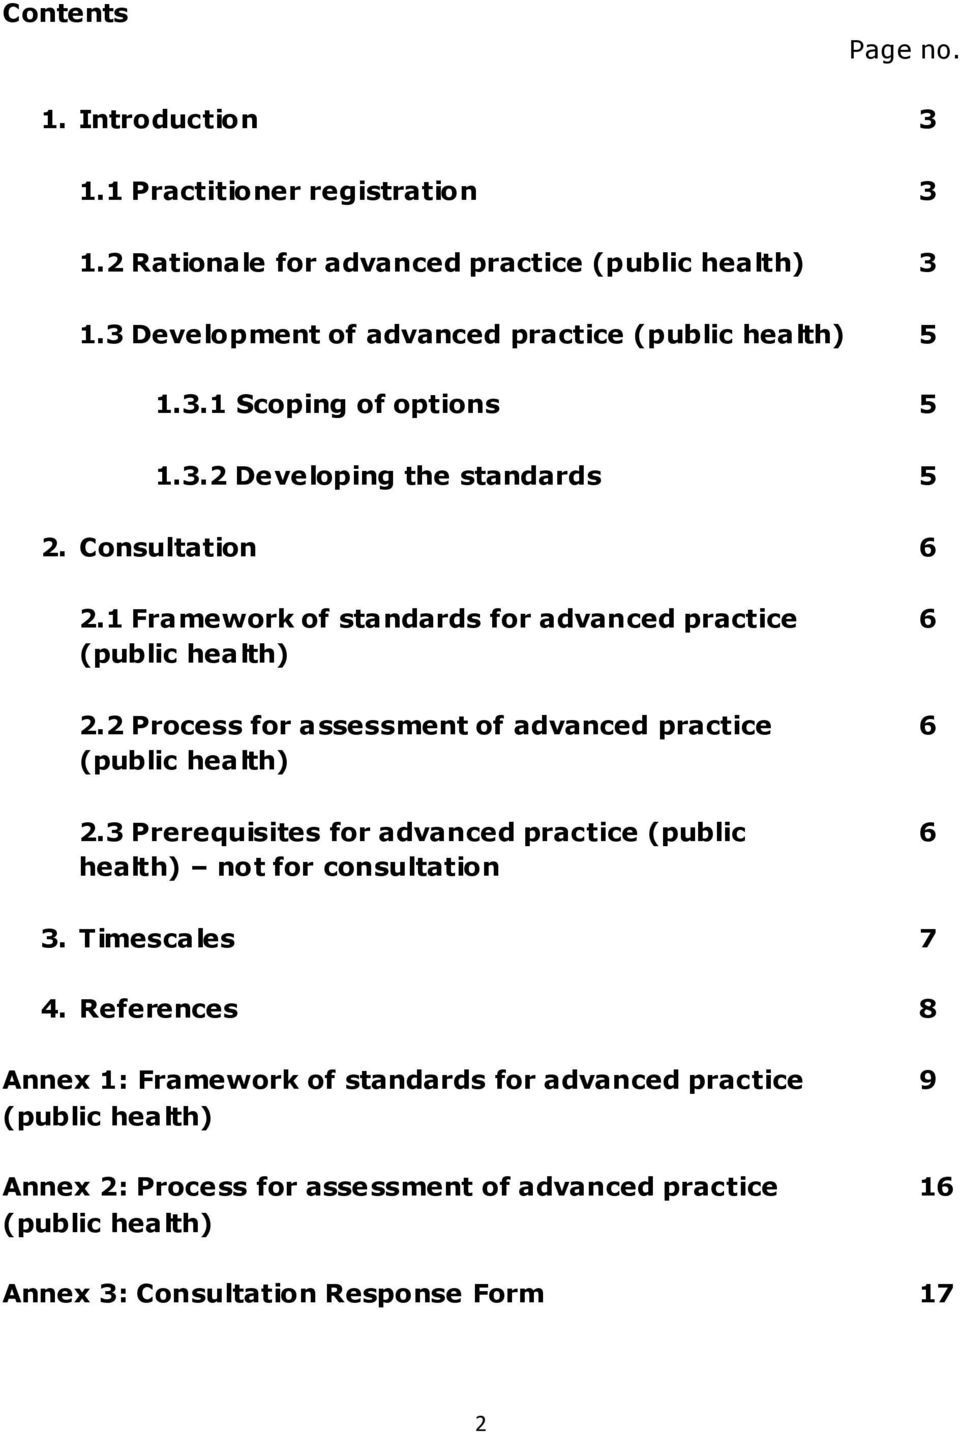 1 Framework of standards for advanced practice 6 (public health) 2.2 Process for assessment of advanced practice 6 (public health) 2.